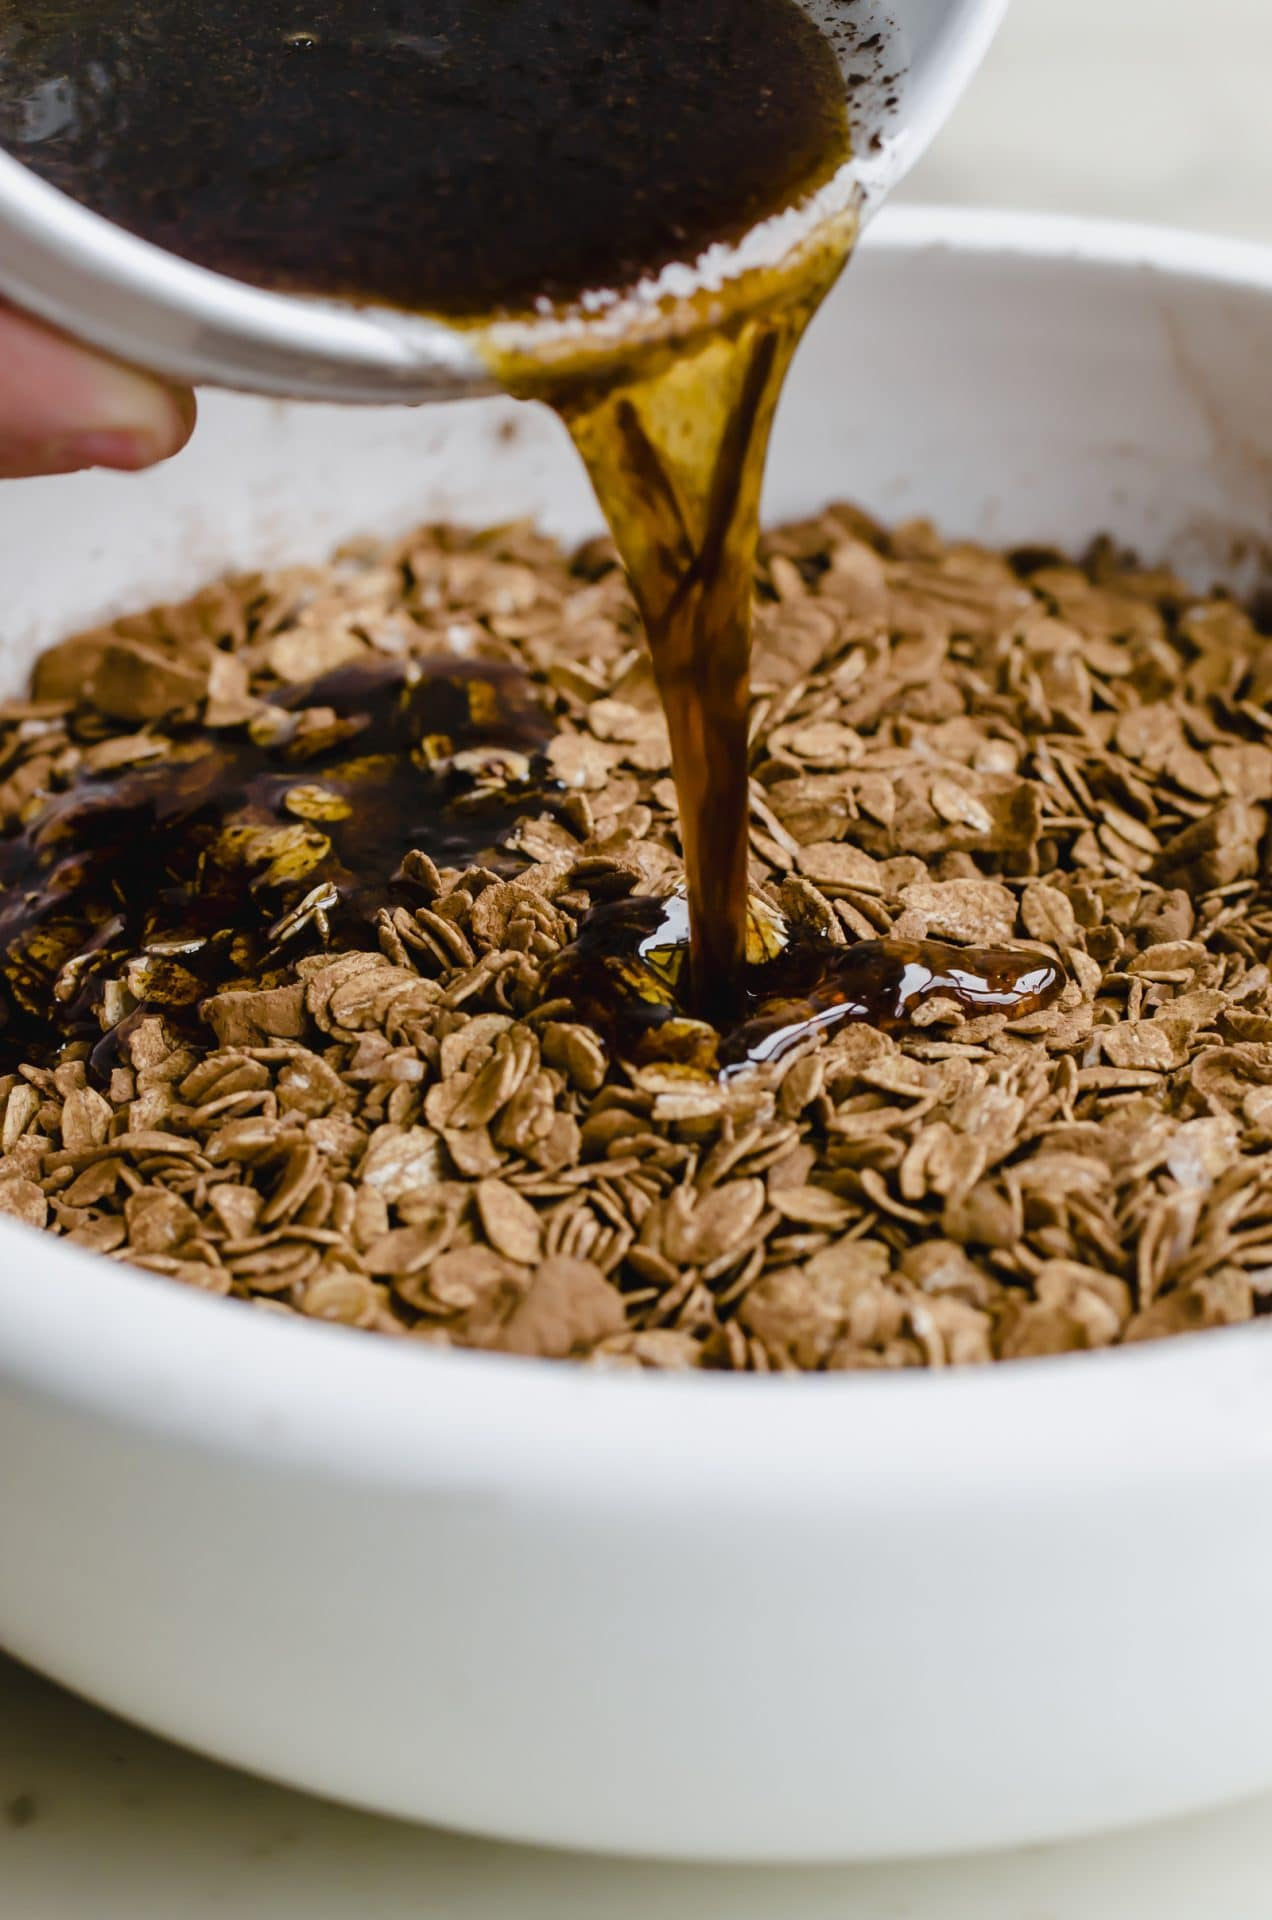 Maple syrup mixture pouring into an oat granola mixture in a white bowl.